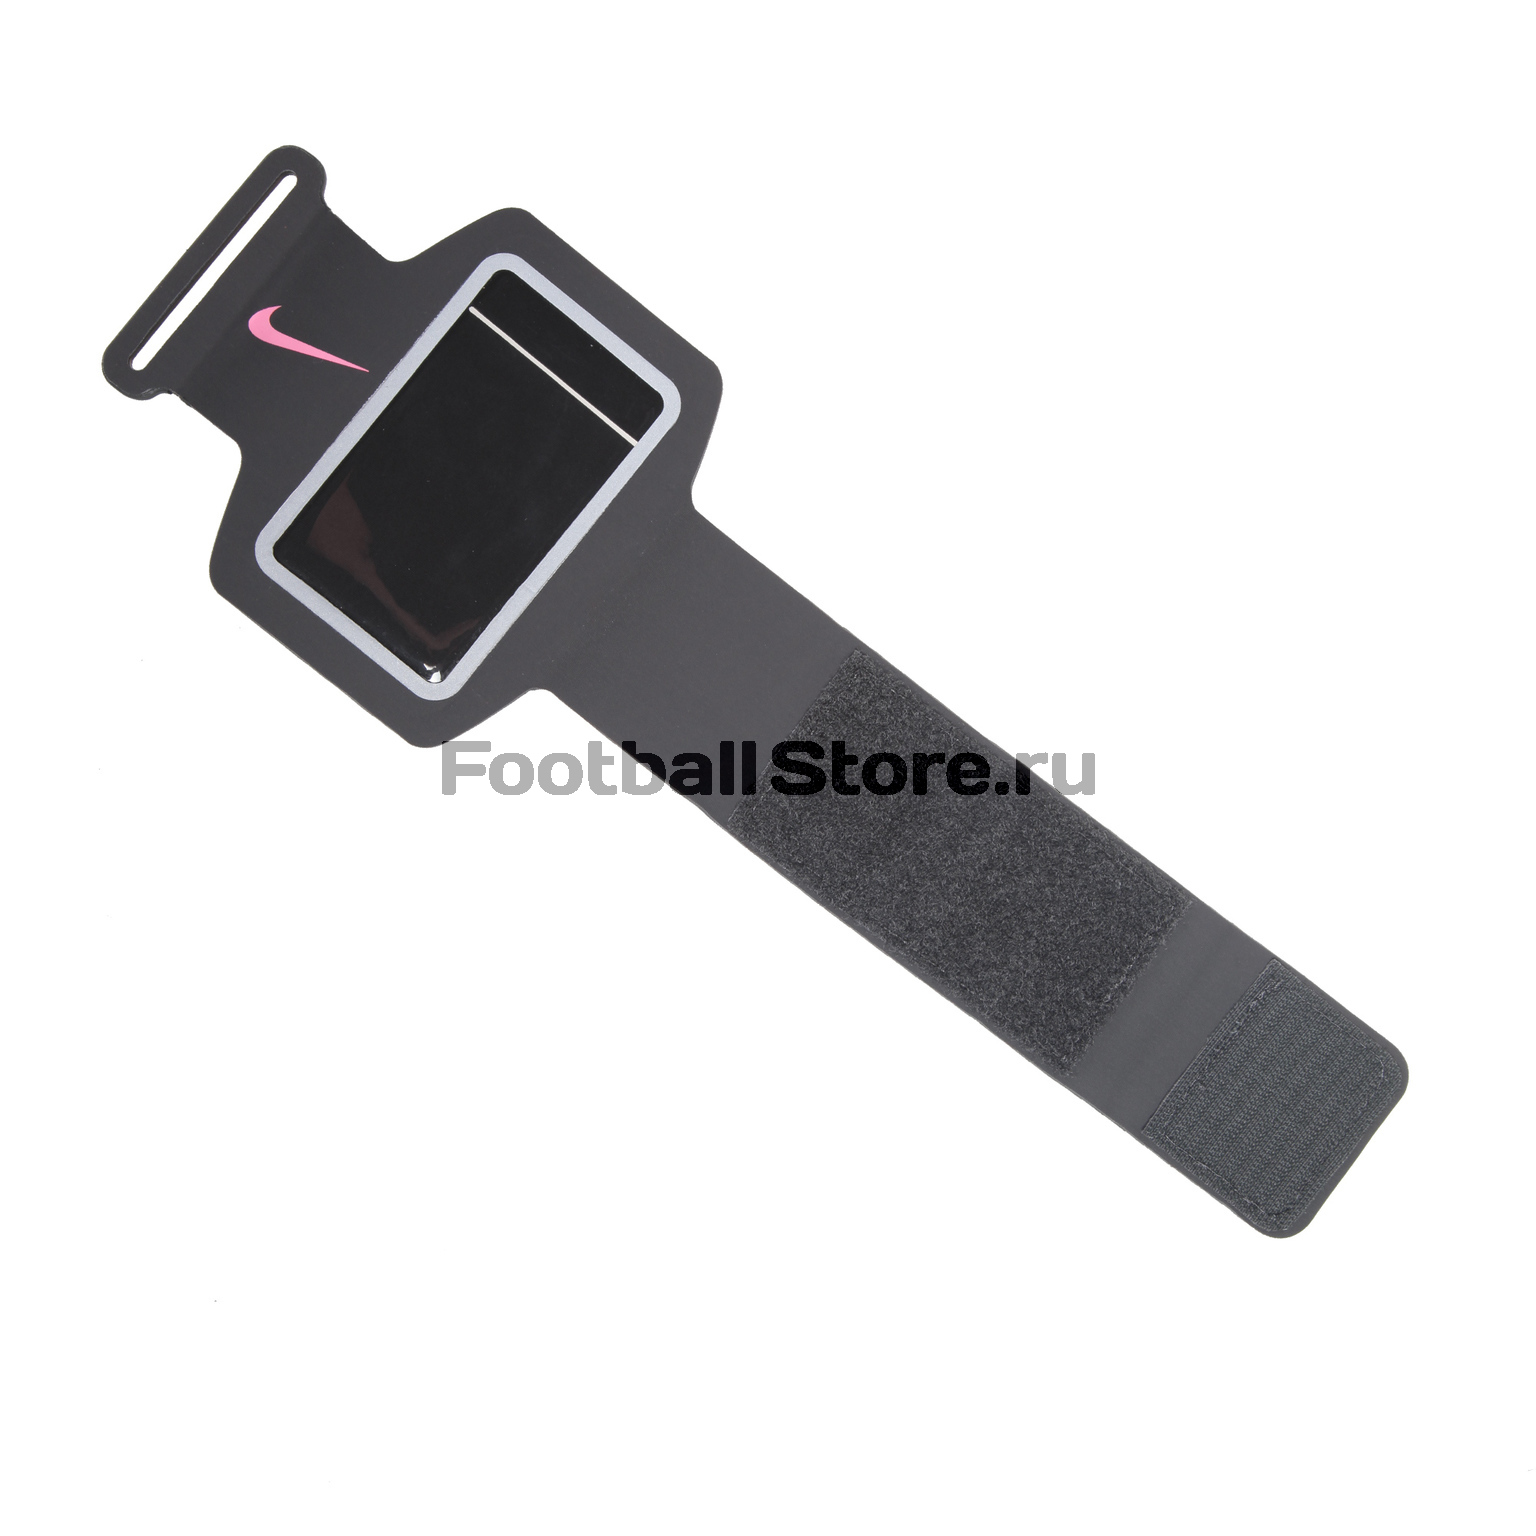 Чехол для плеера на руку Nike Sport Phone Band N.RN.16.048.OS nike nike sport water 590ml bottle